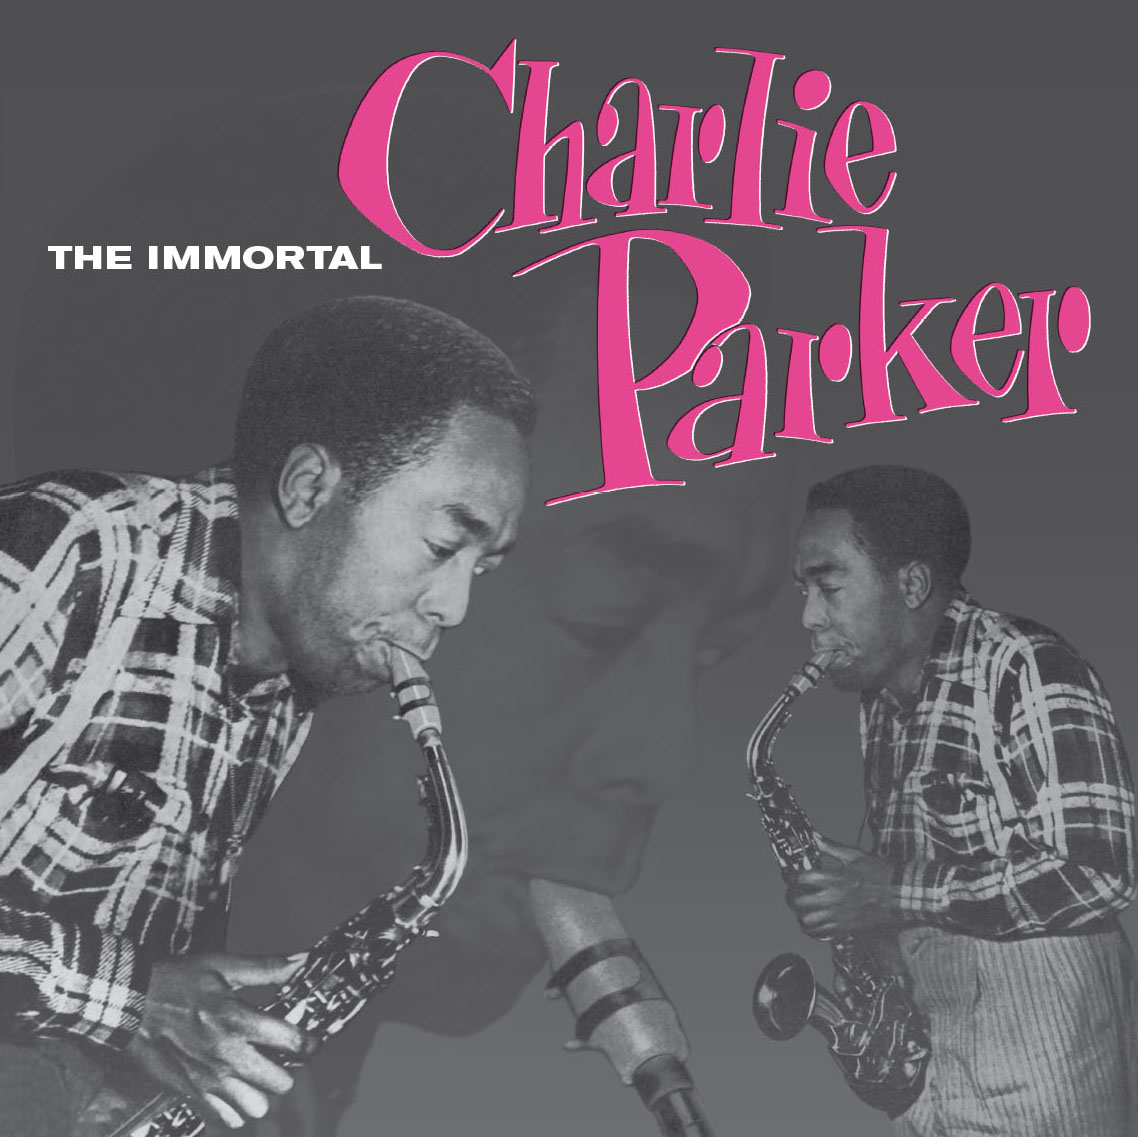 Charlie Parker/THE IMMORTAL (180g) LP